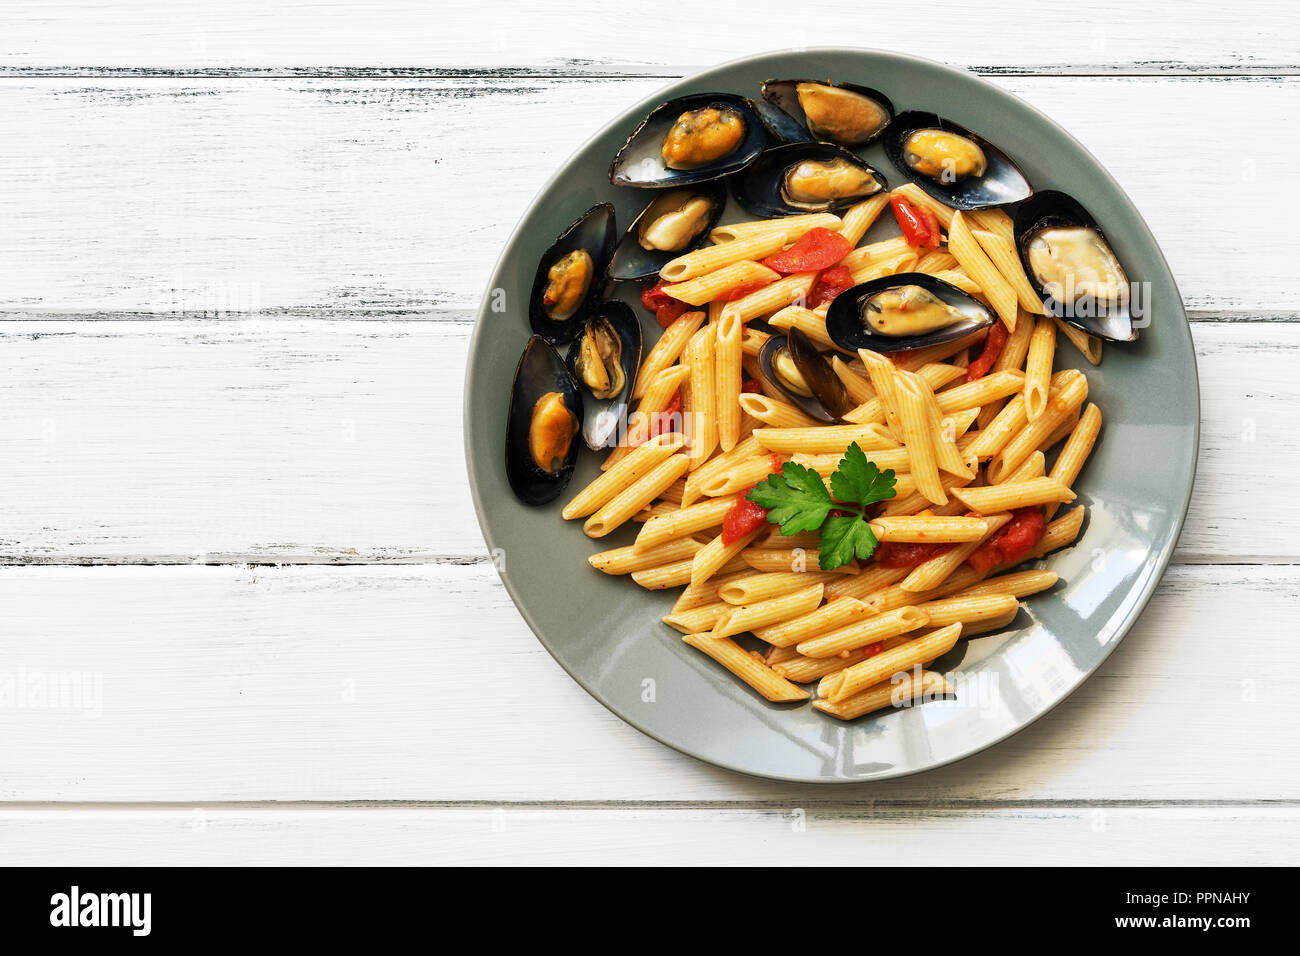 Penne pasta with mussels on a white wooden rustic table. Top view, copy space - Stock Image